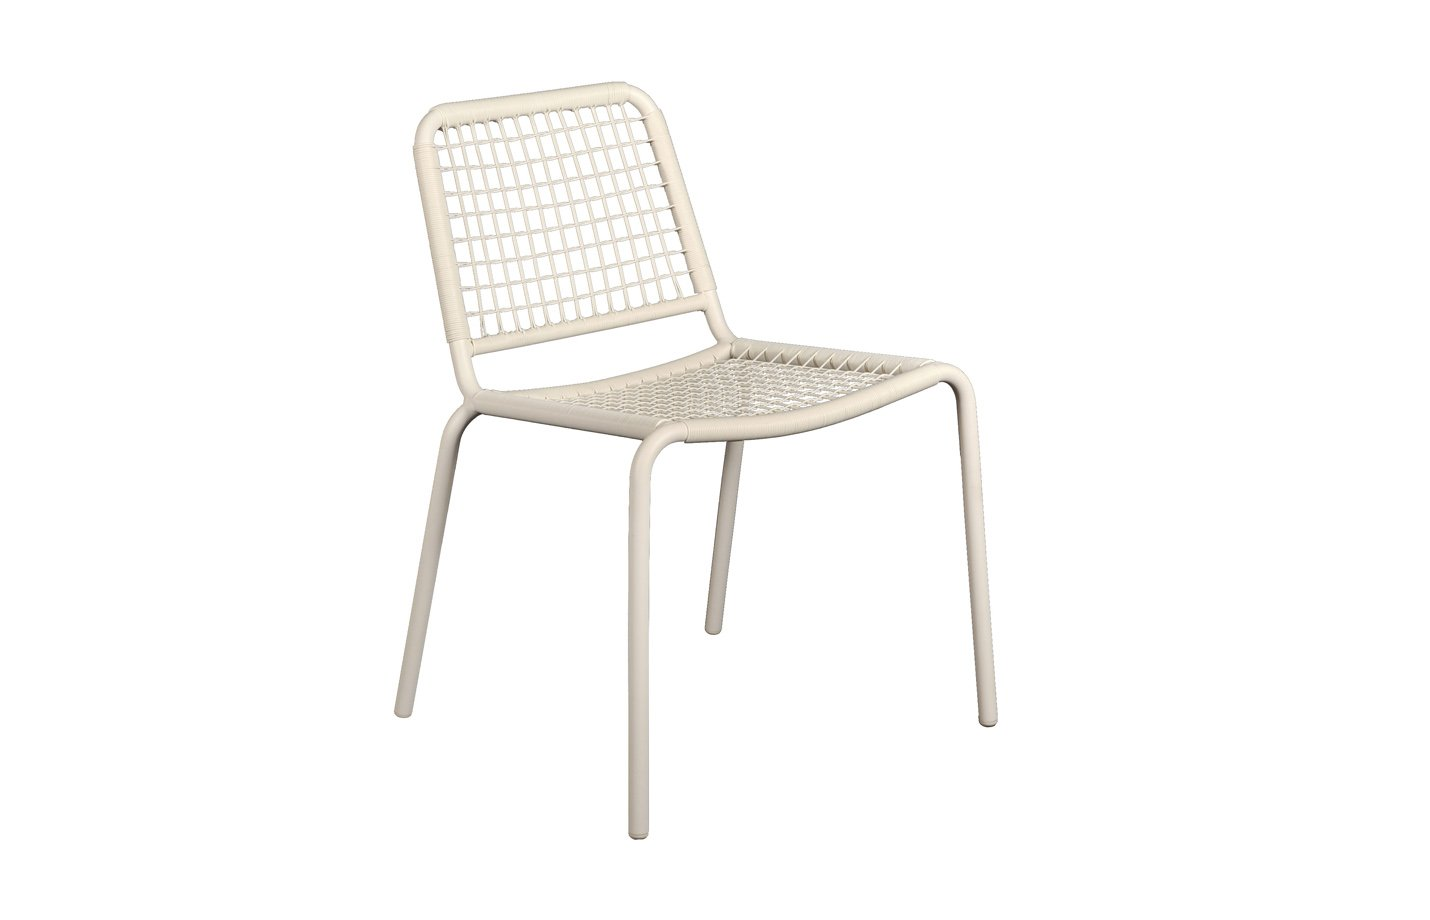 Vega Wicker Chair – White